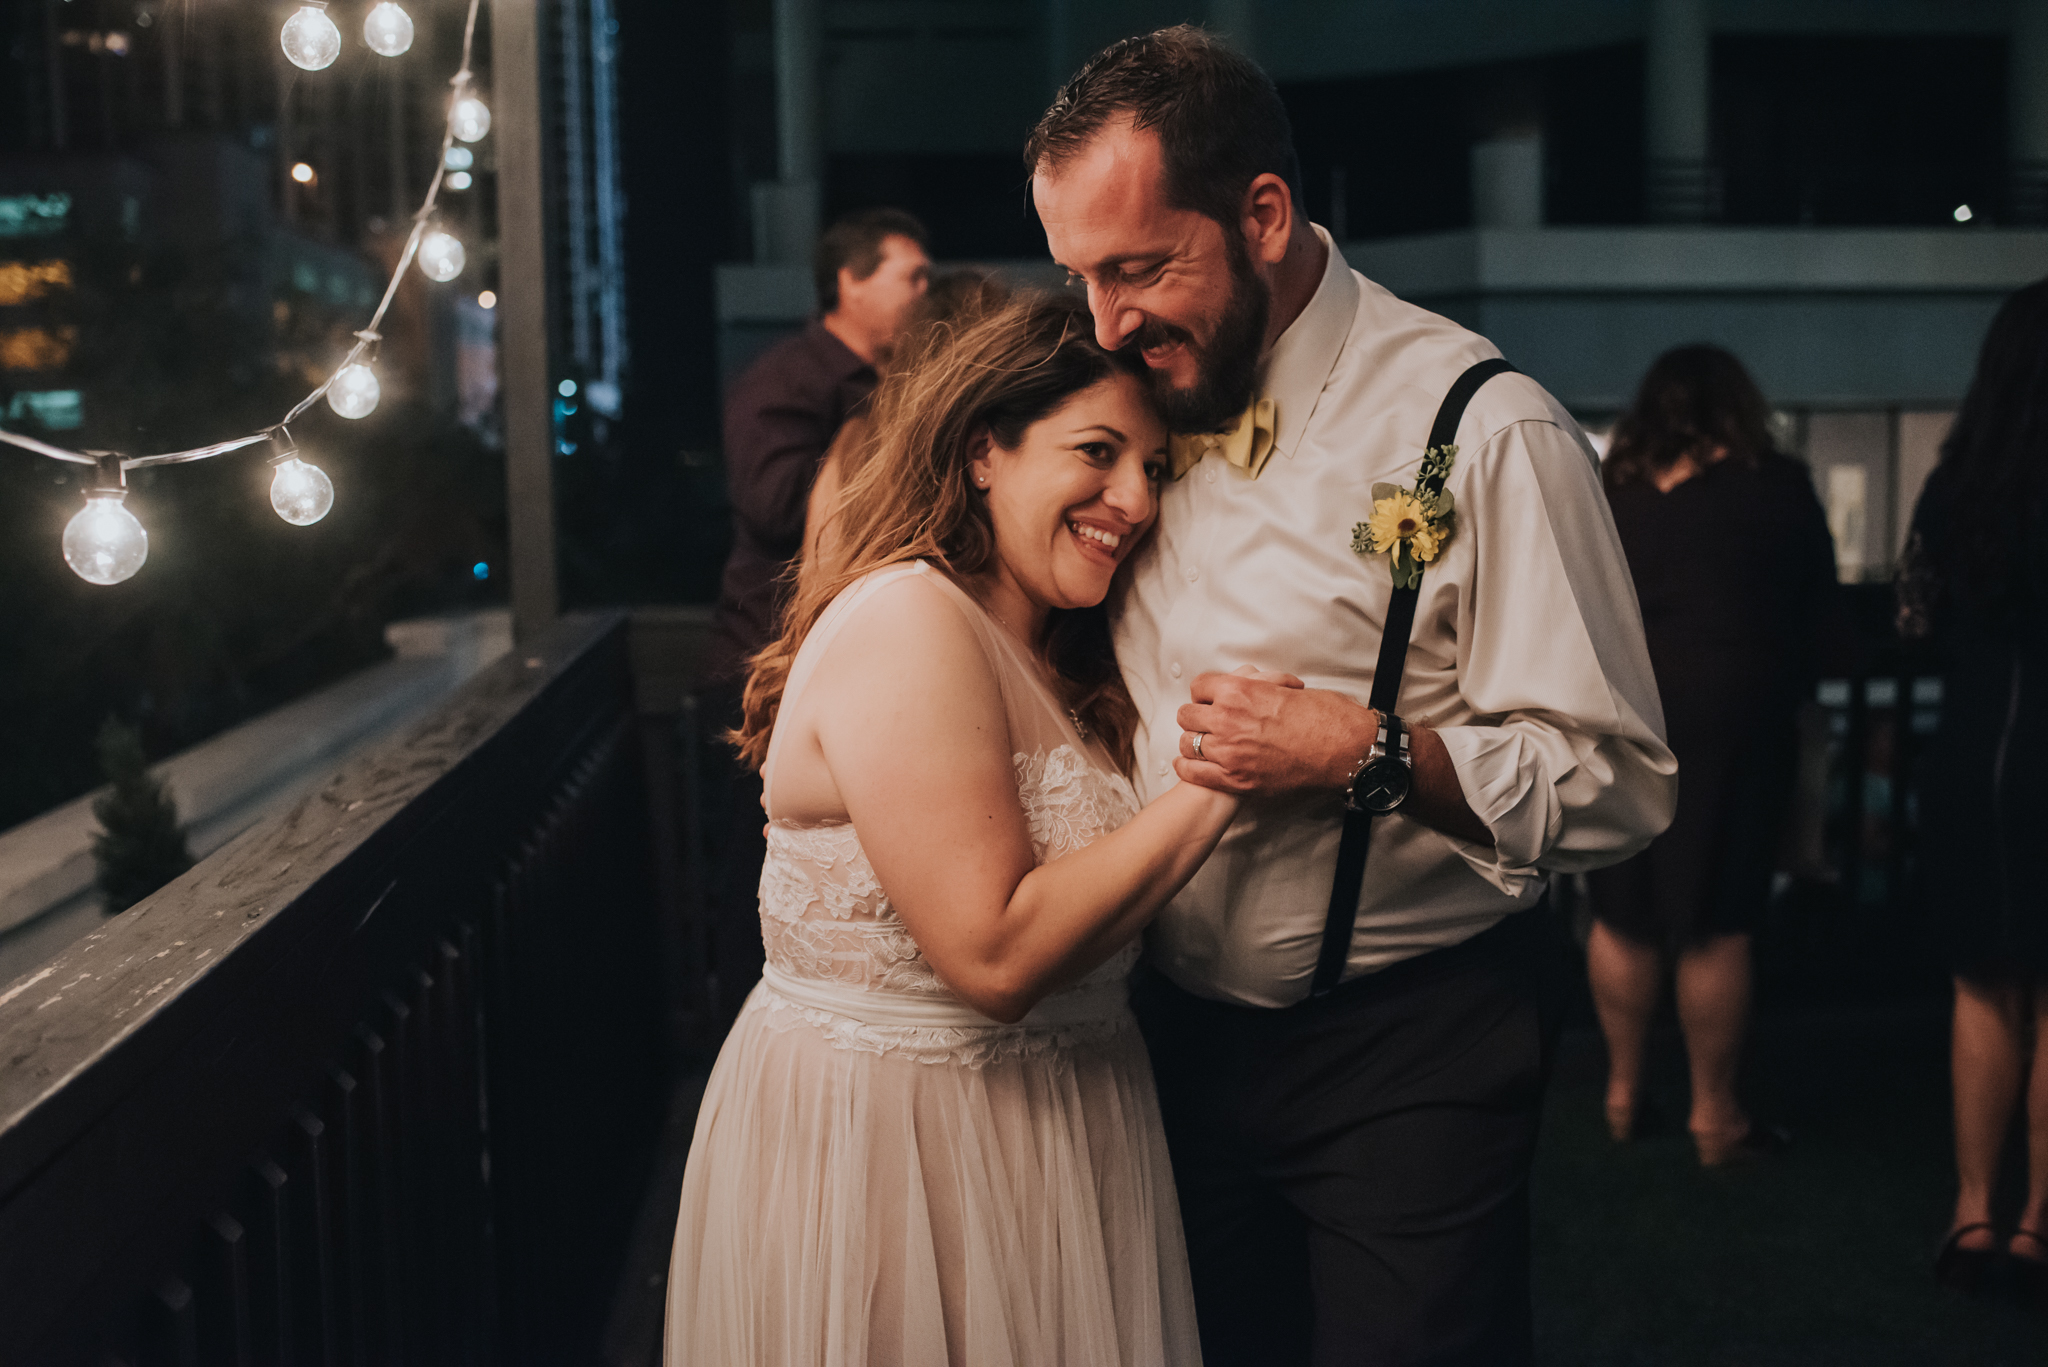 A Station House Wedding in St. Pete - A wedding that was as sweet as it could possibly be.